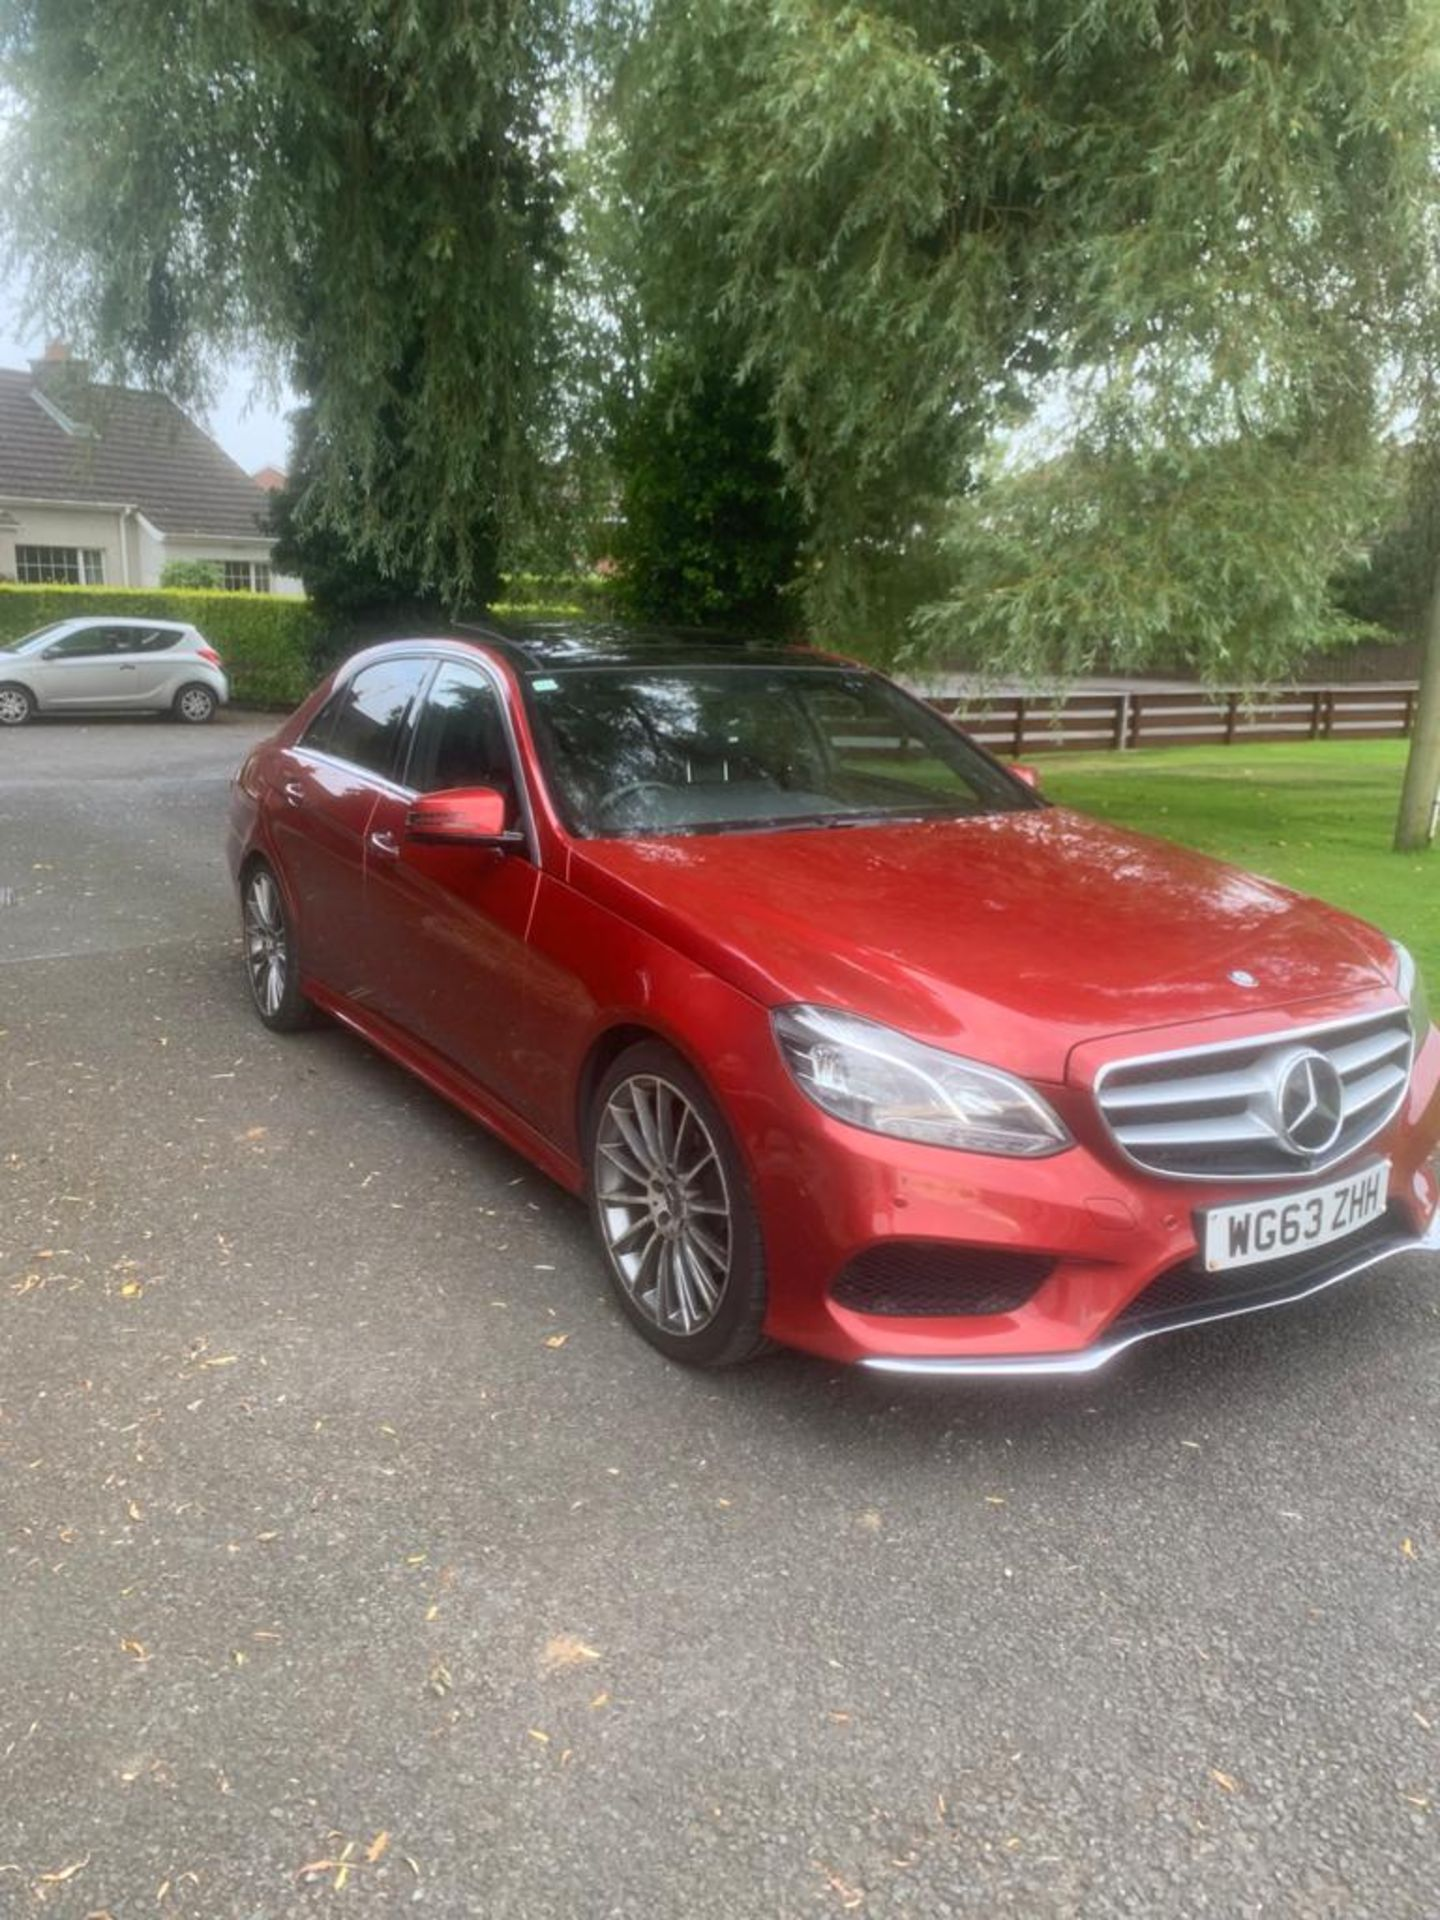 2014/63 REG MERCEDES-BENZ E300 AMG SPORT BLUETEC HYBRID 2.2 ELECTRIC DIESEL RED 4 DOOR SALOON - Image 3 of 15